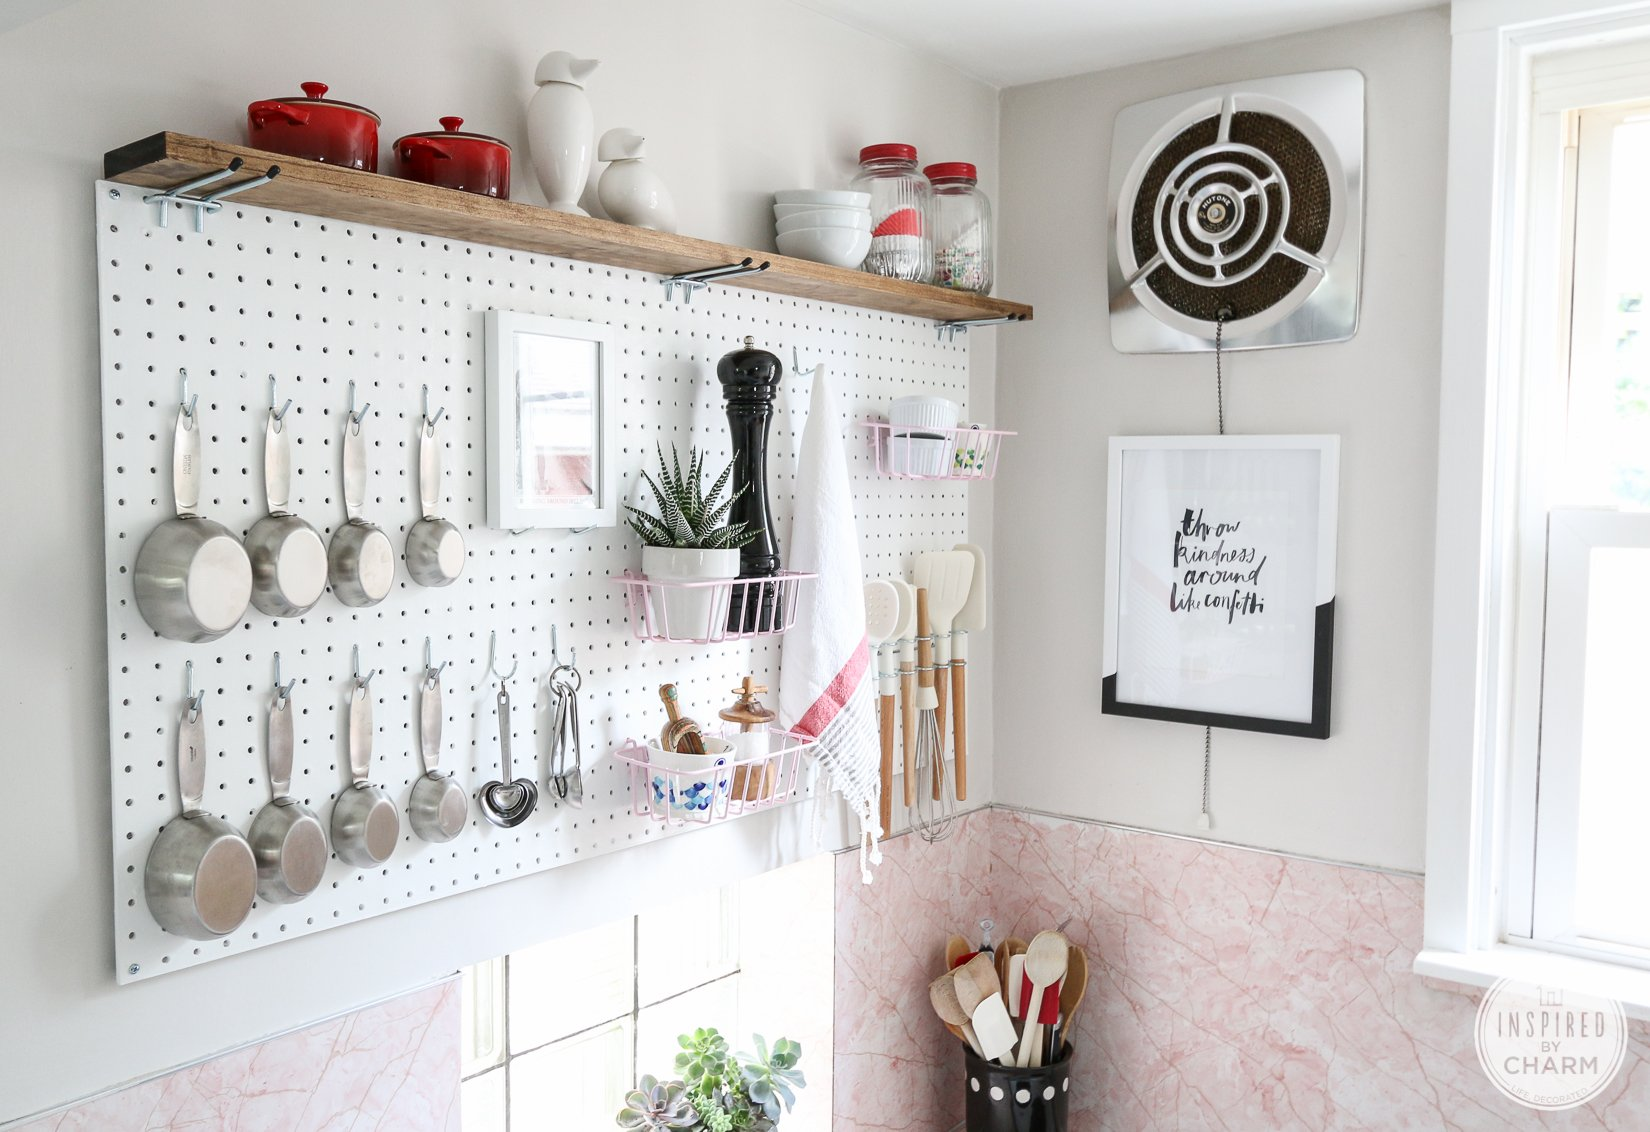 Pegboard Kitchen Pegboard Kitchen Storage Inspired By Charm